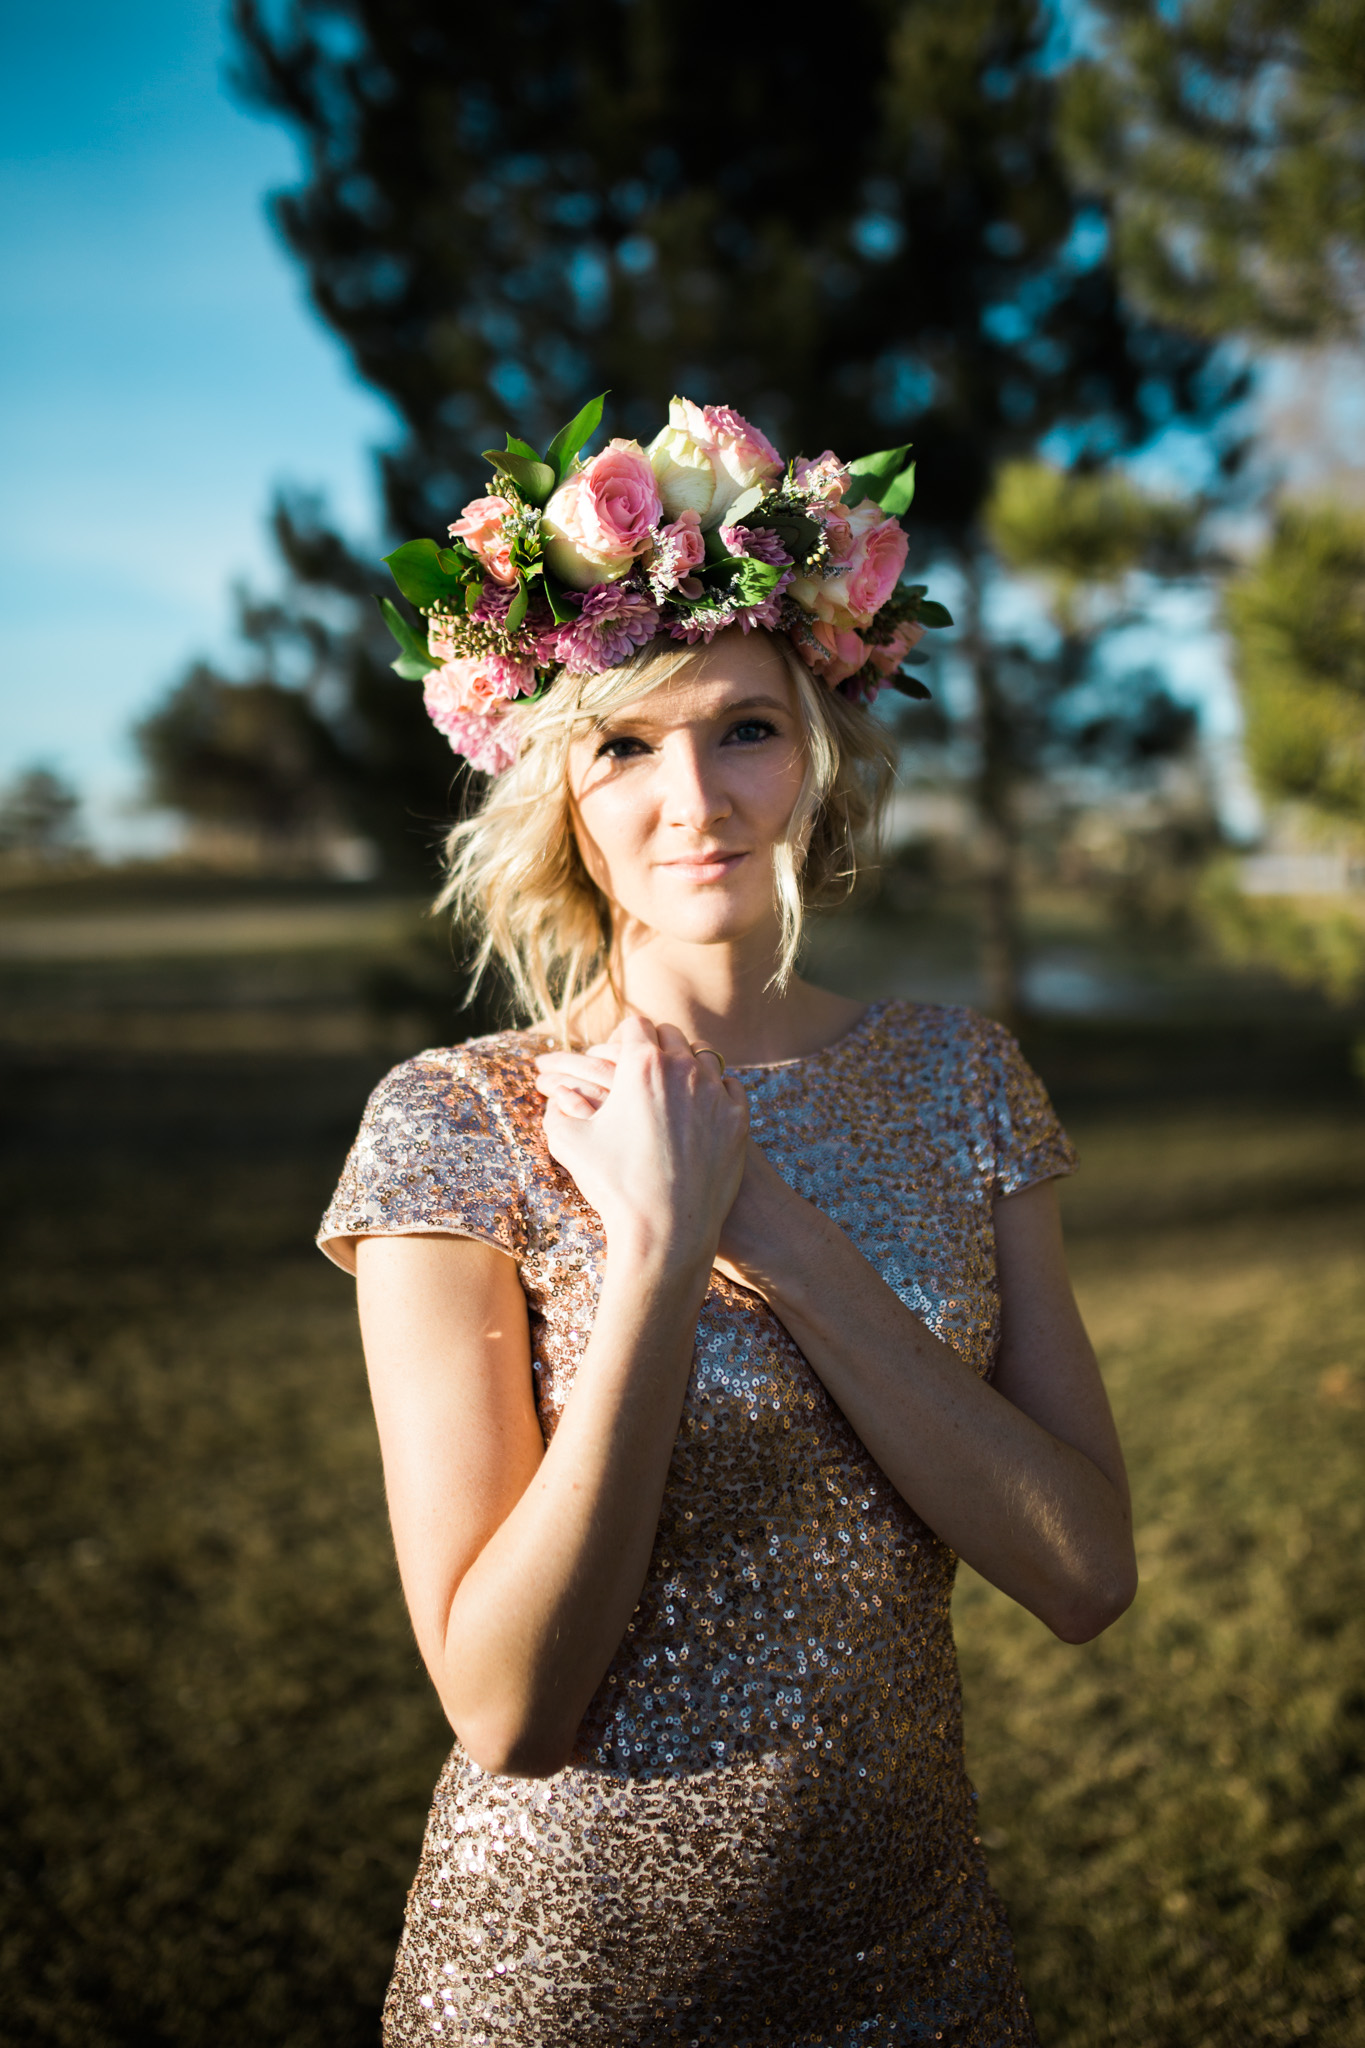 How to make a floral crown brick willow photography floral head crown izmirmasajfo